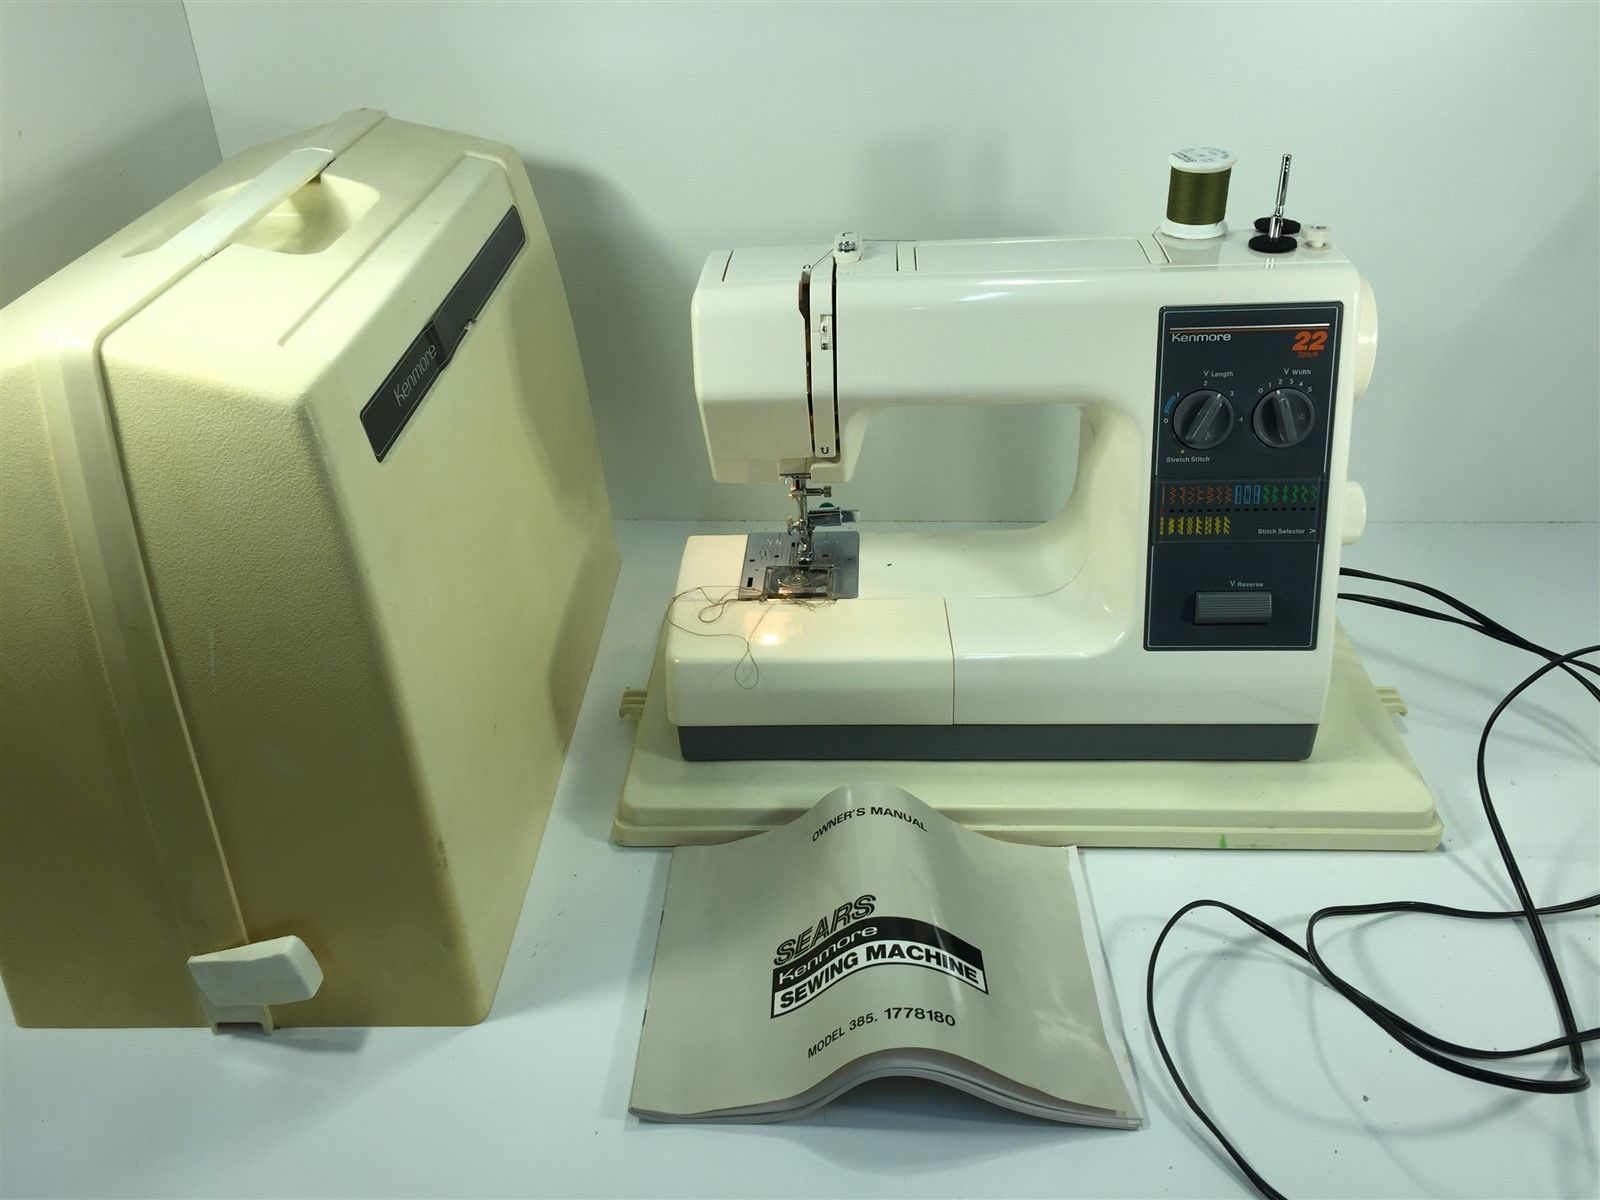 Vintage Kenmore 385.1778180 22 Stitch Sewing Machine With Manual & Case